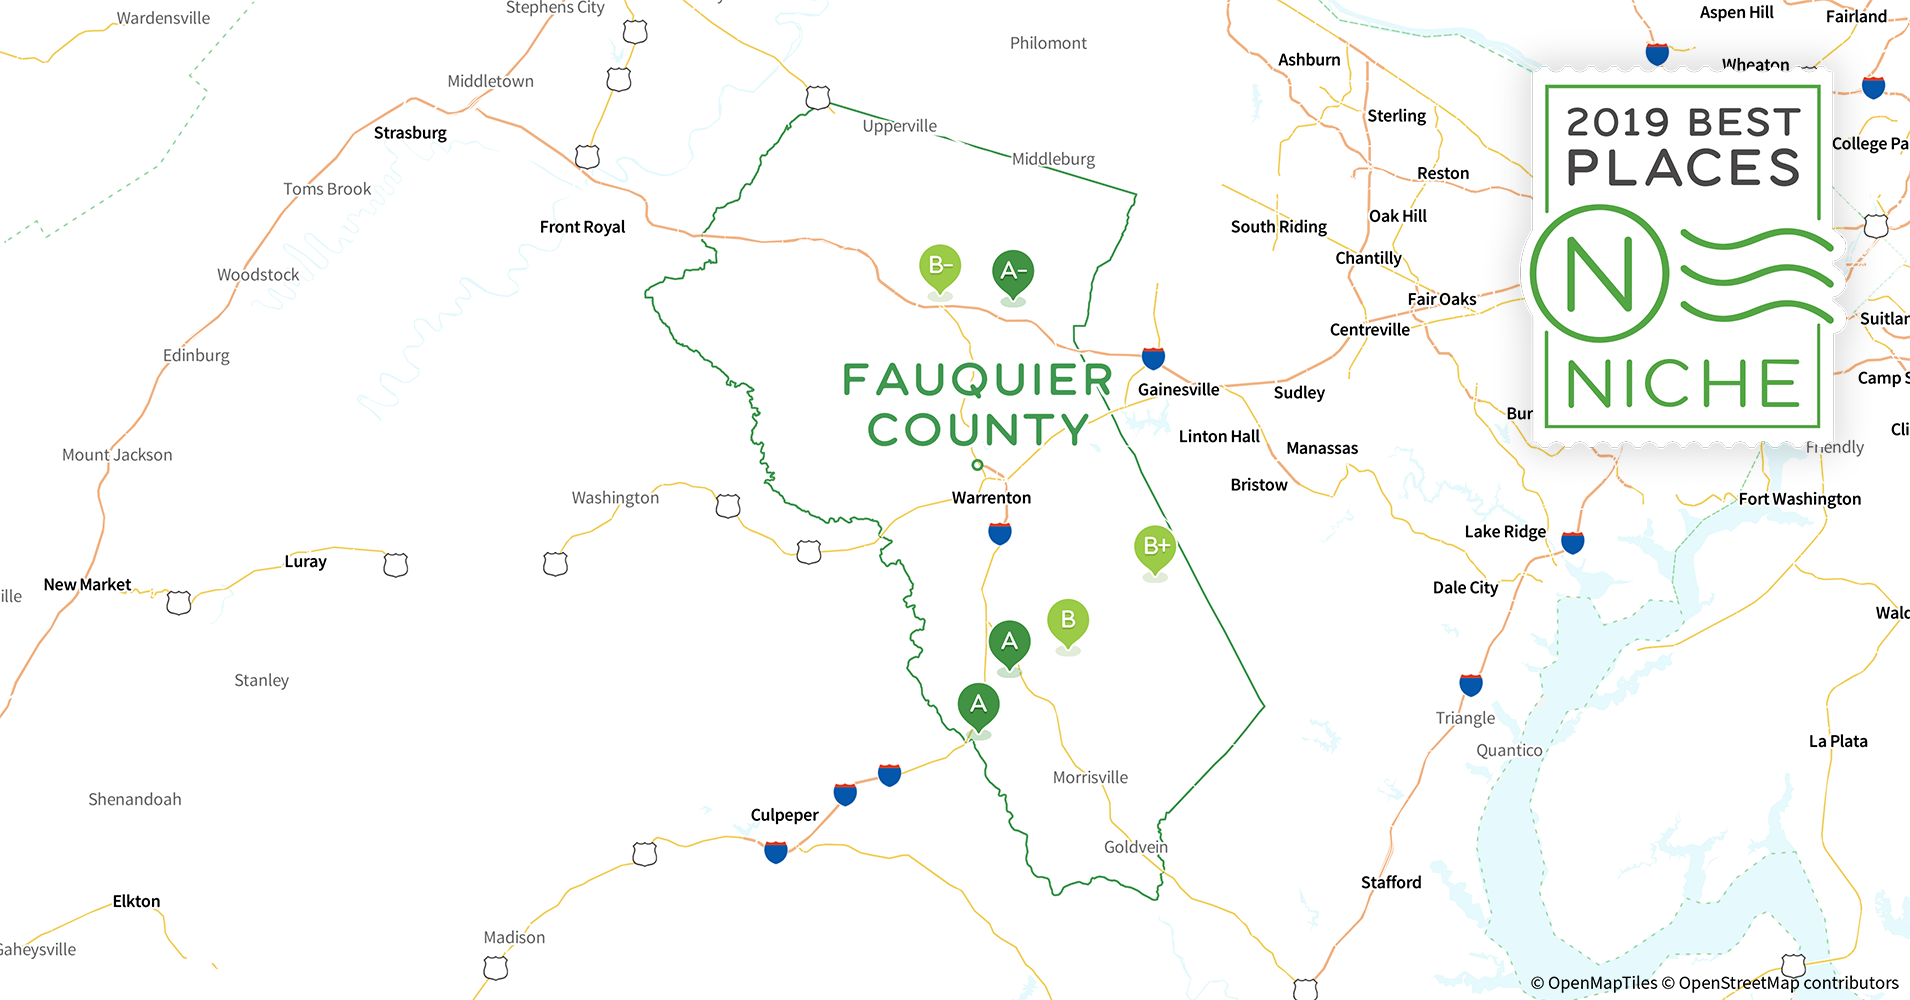 2019 Best Places to Live in Fauquier County, VA - Niche Map Of Fauquier County Va on